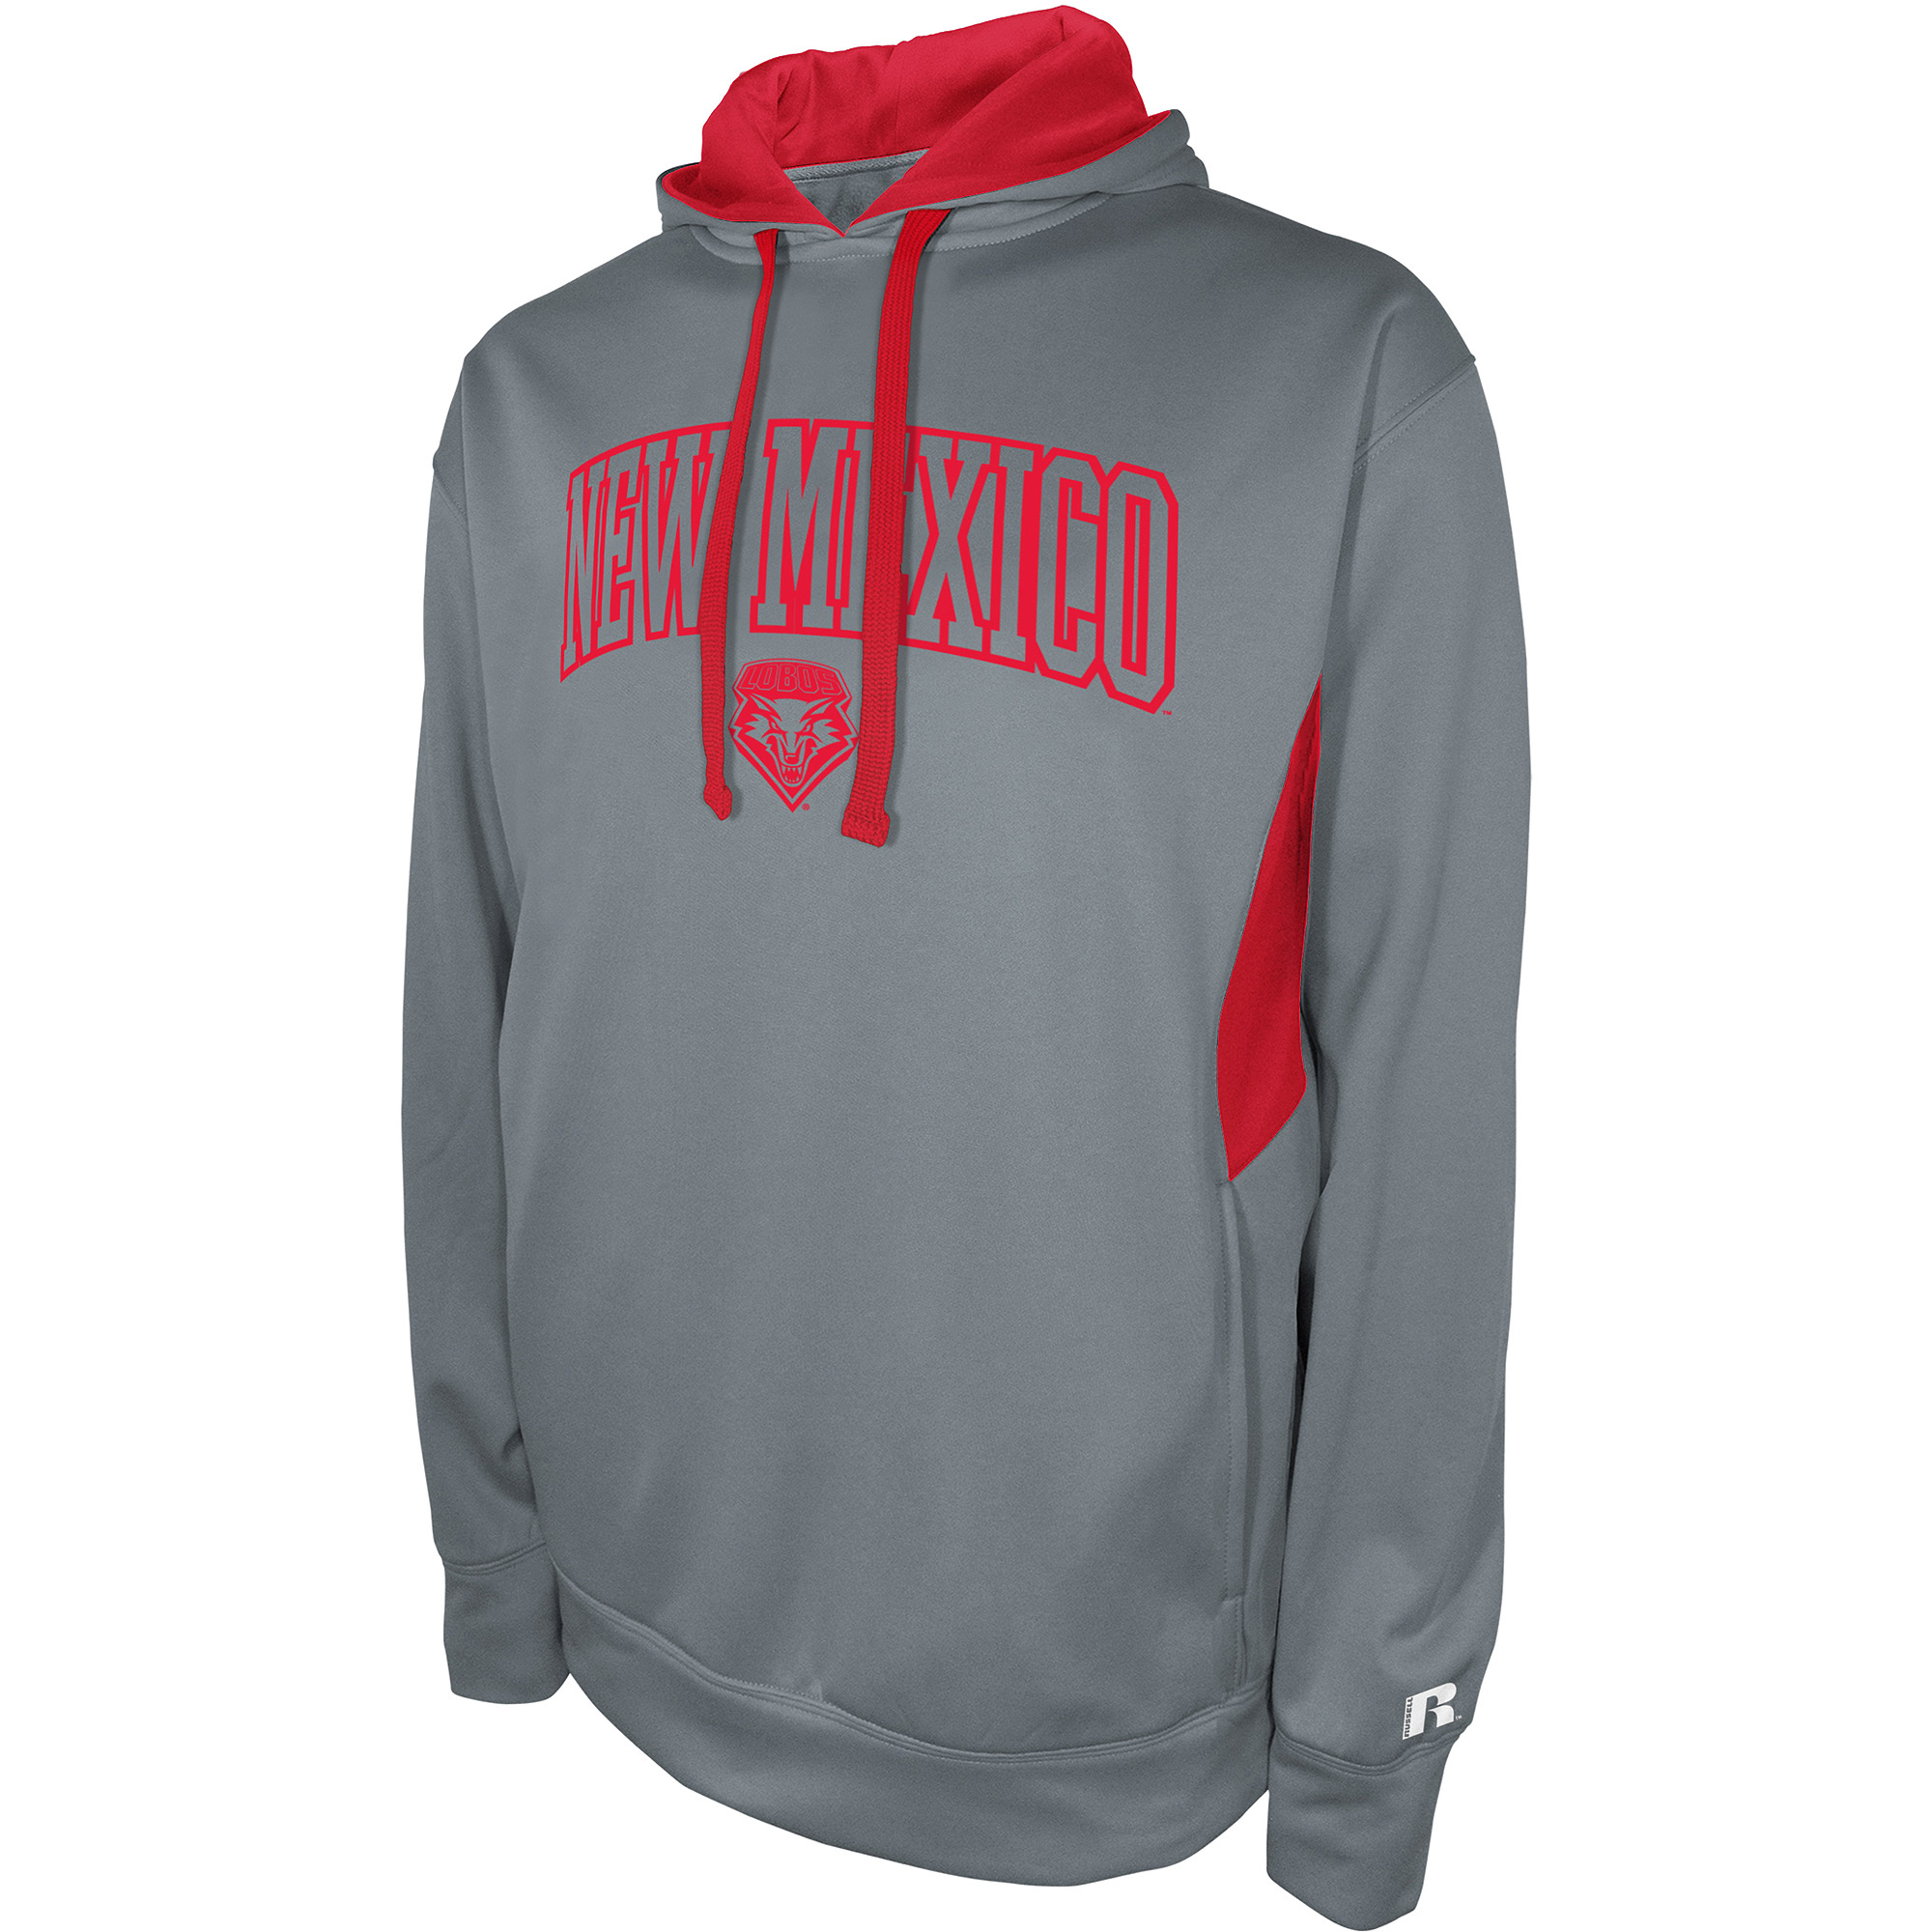 Russell NCAA New Mexico Lobos, Big Men's Pullover